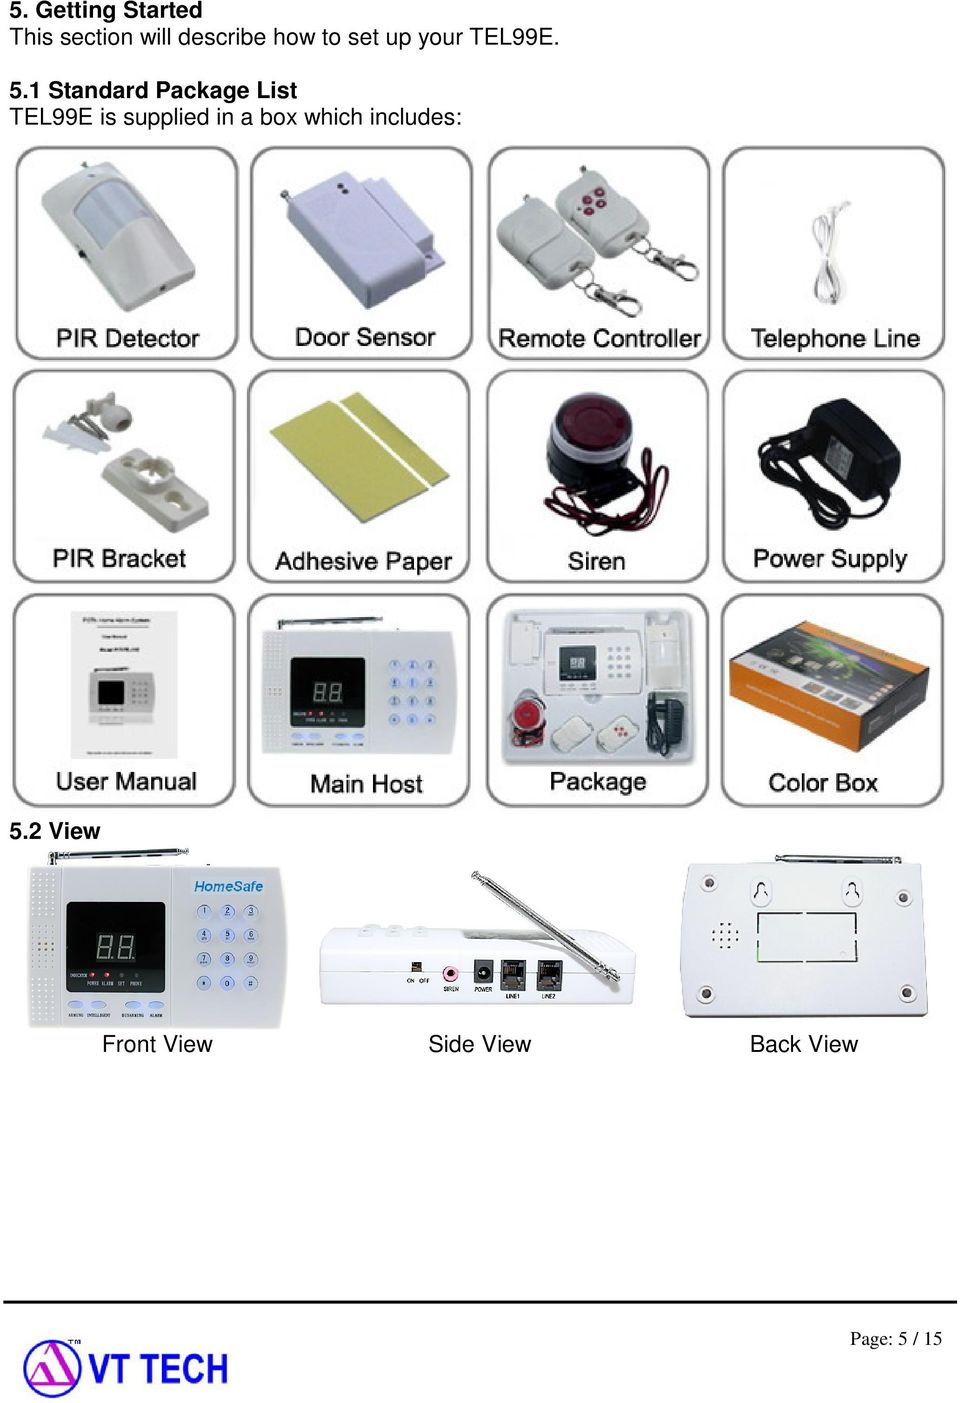 1 Standard Package List TEL99E is supplied in a